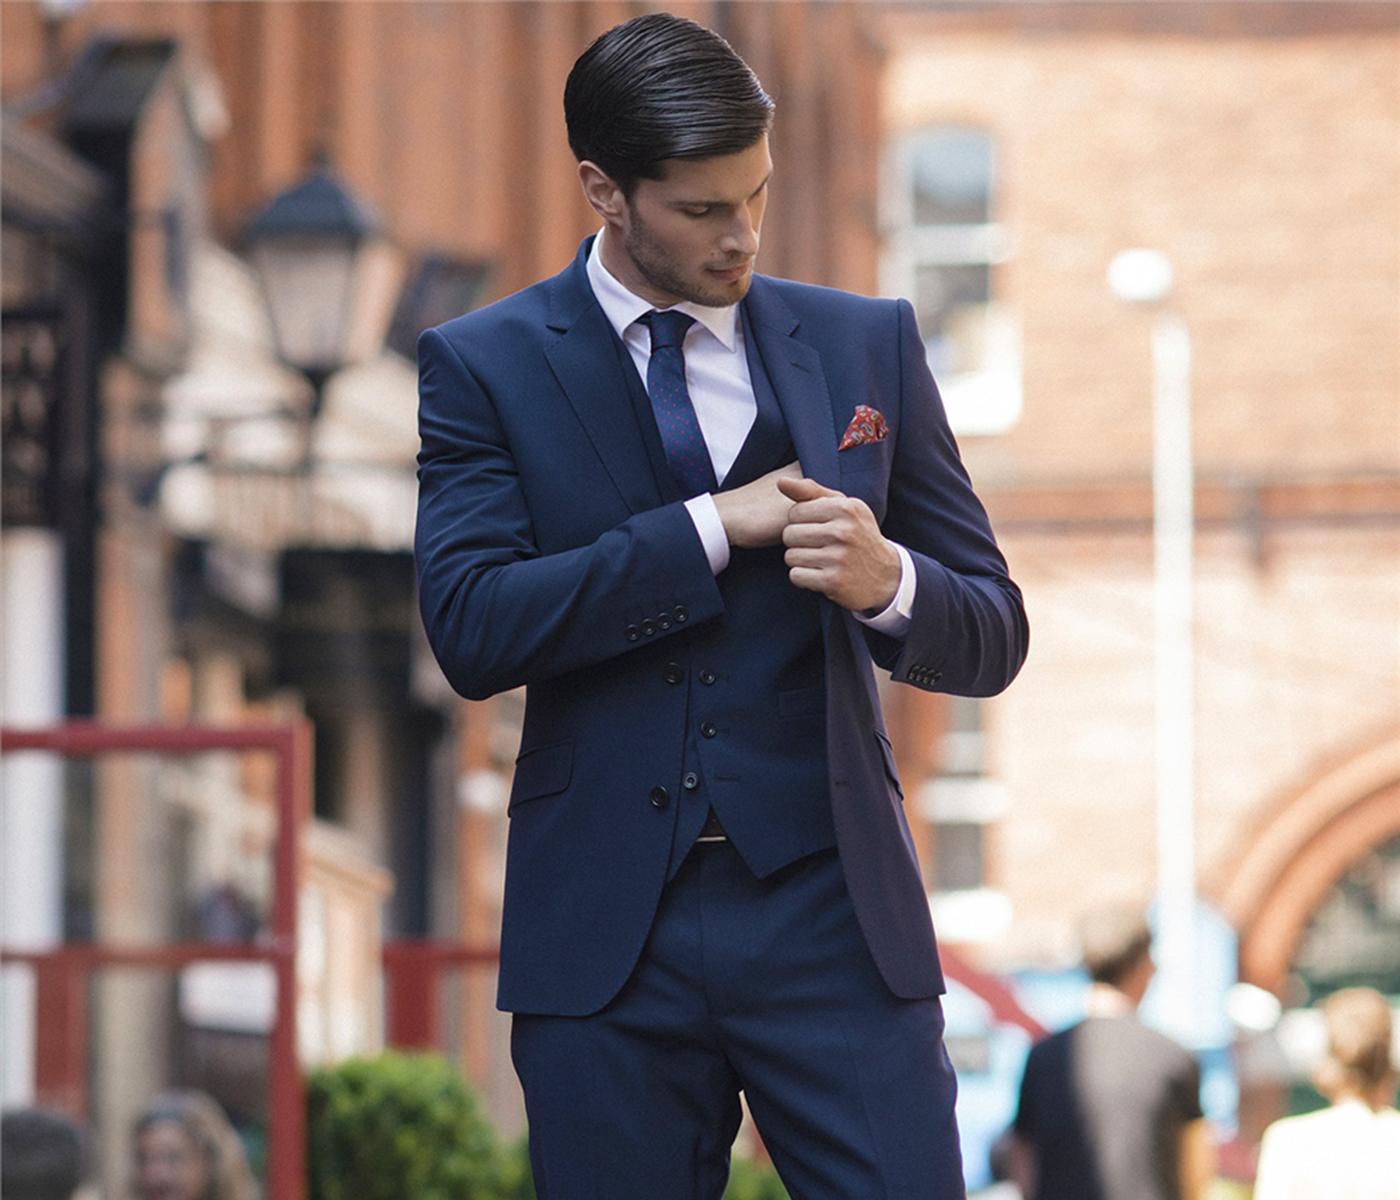 Matt-navy three-piece-suit